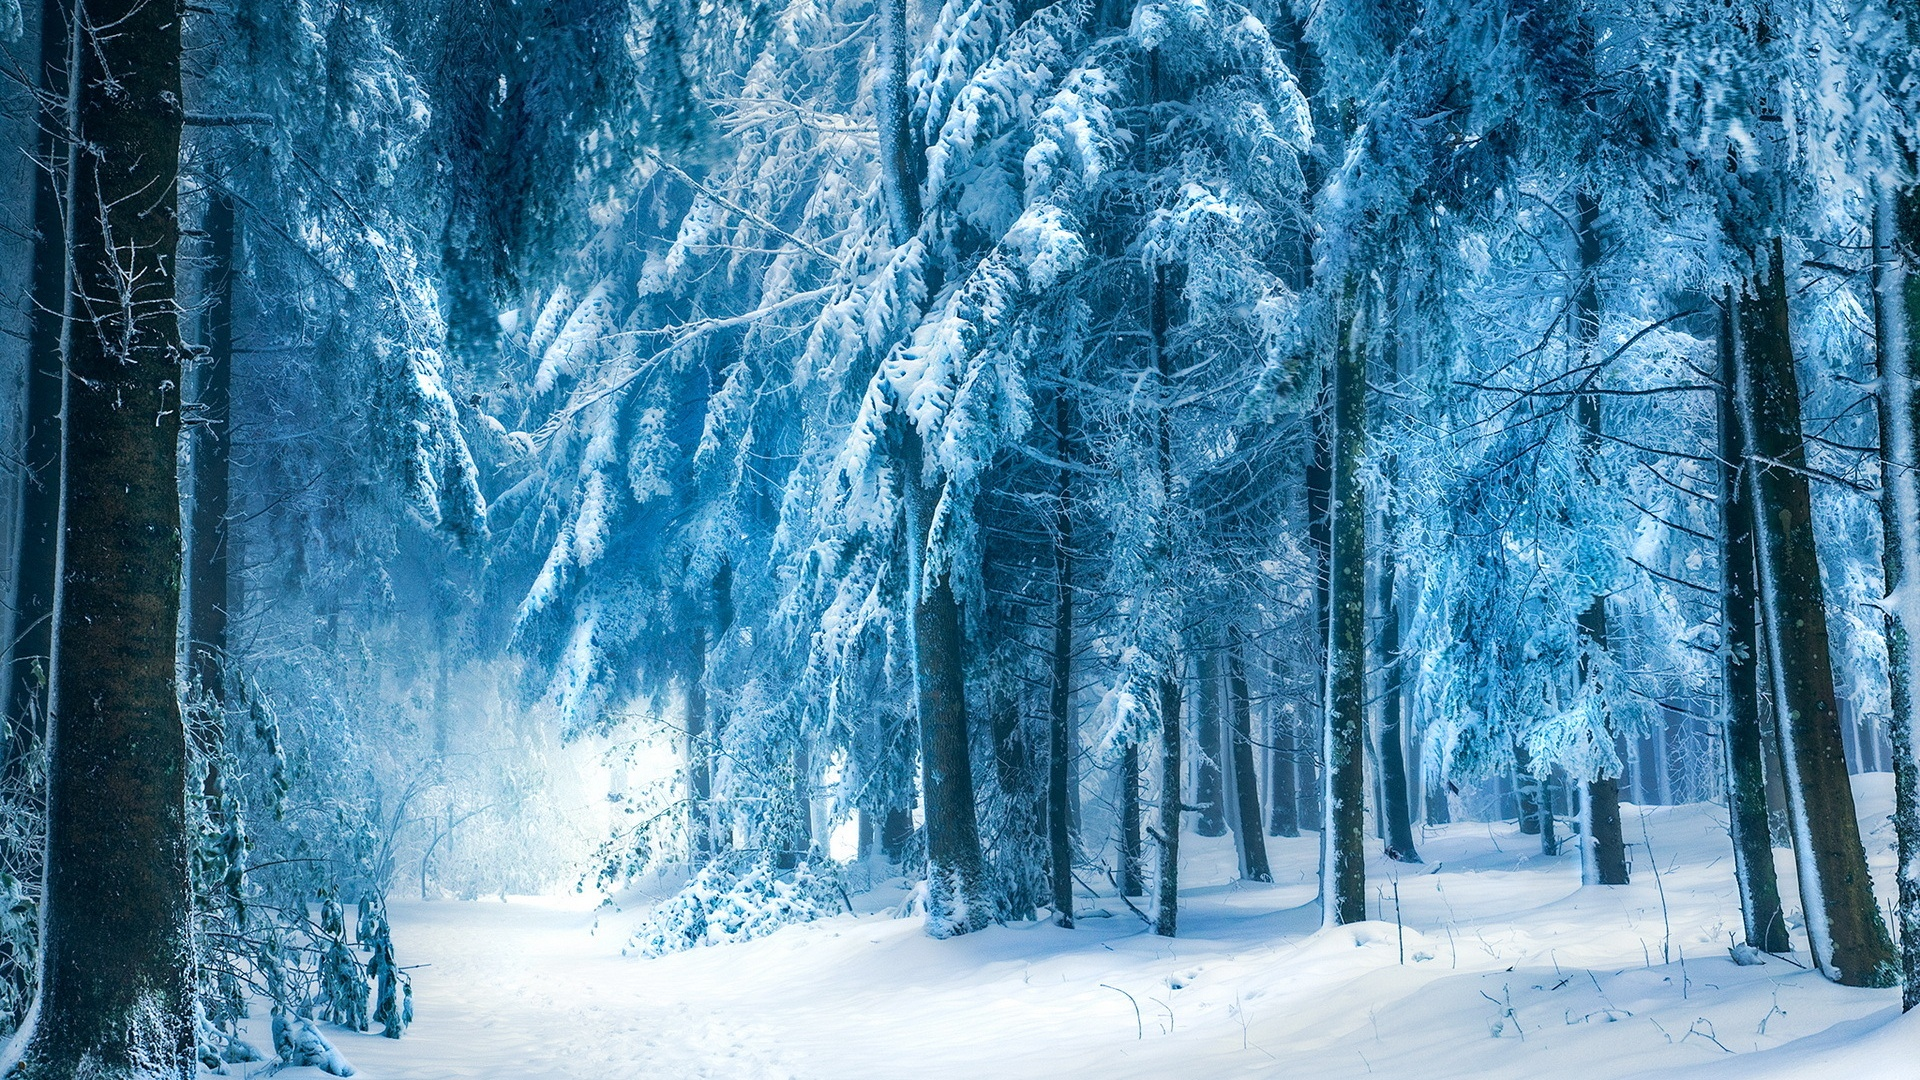 Landscape tree nature beautiful snow winter christmas f 1920x1080